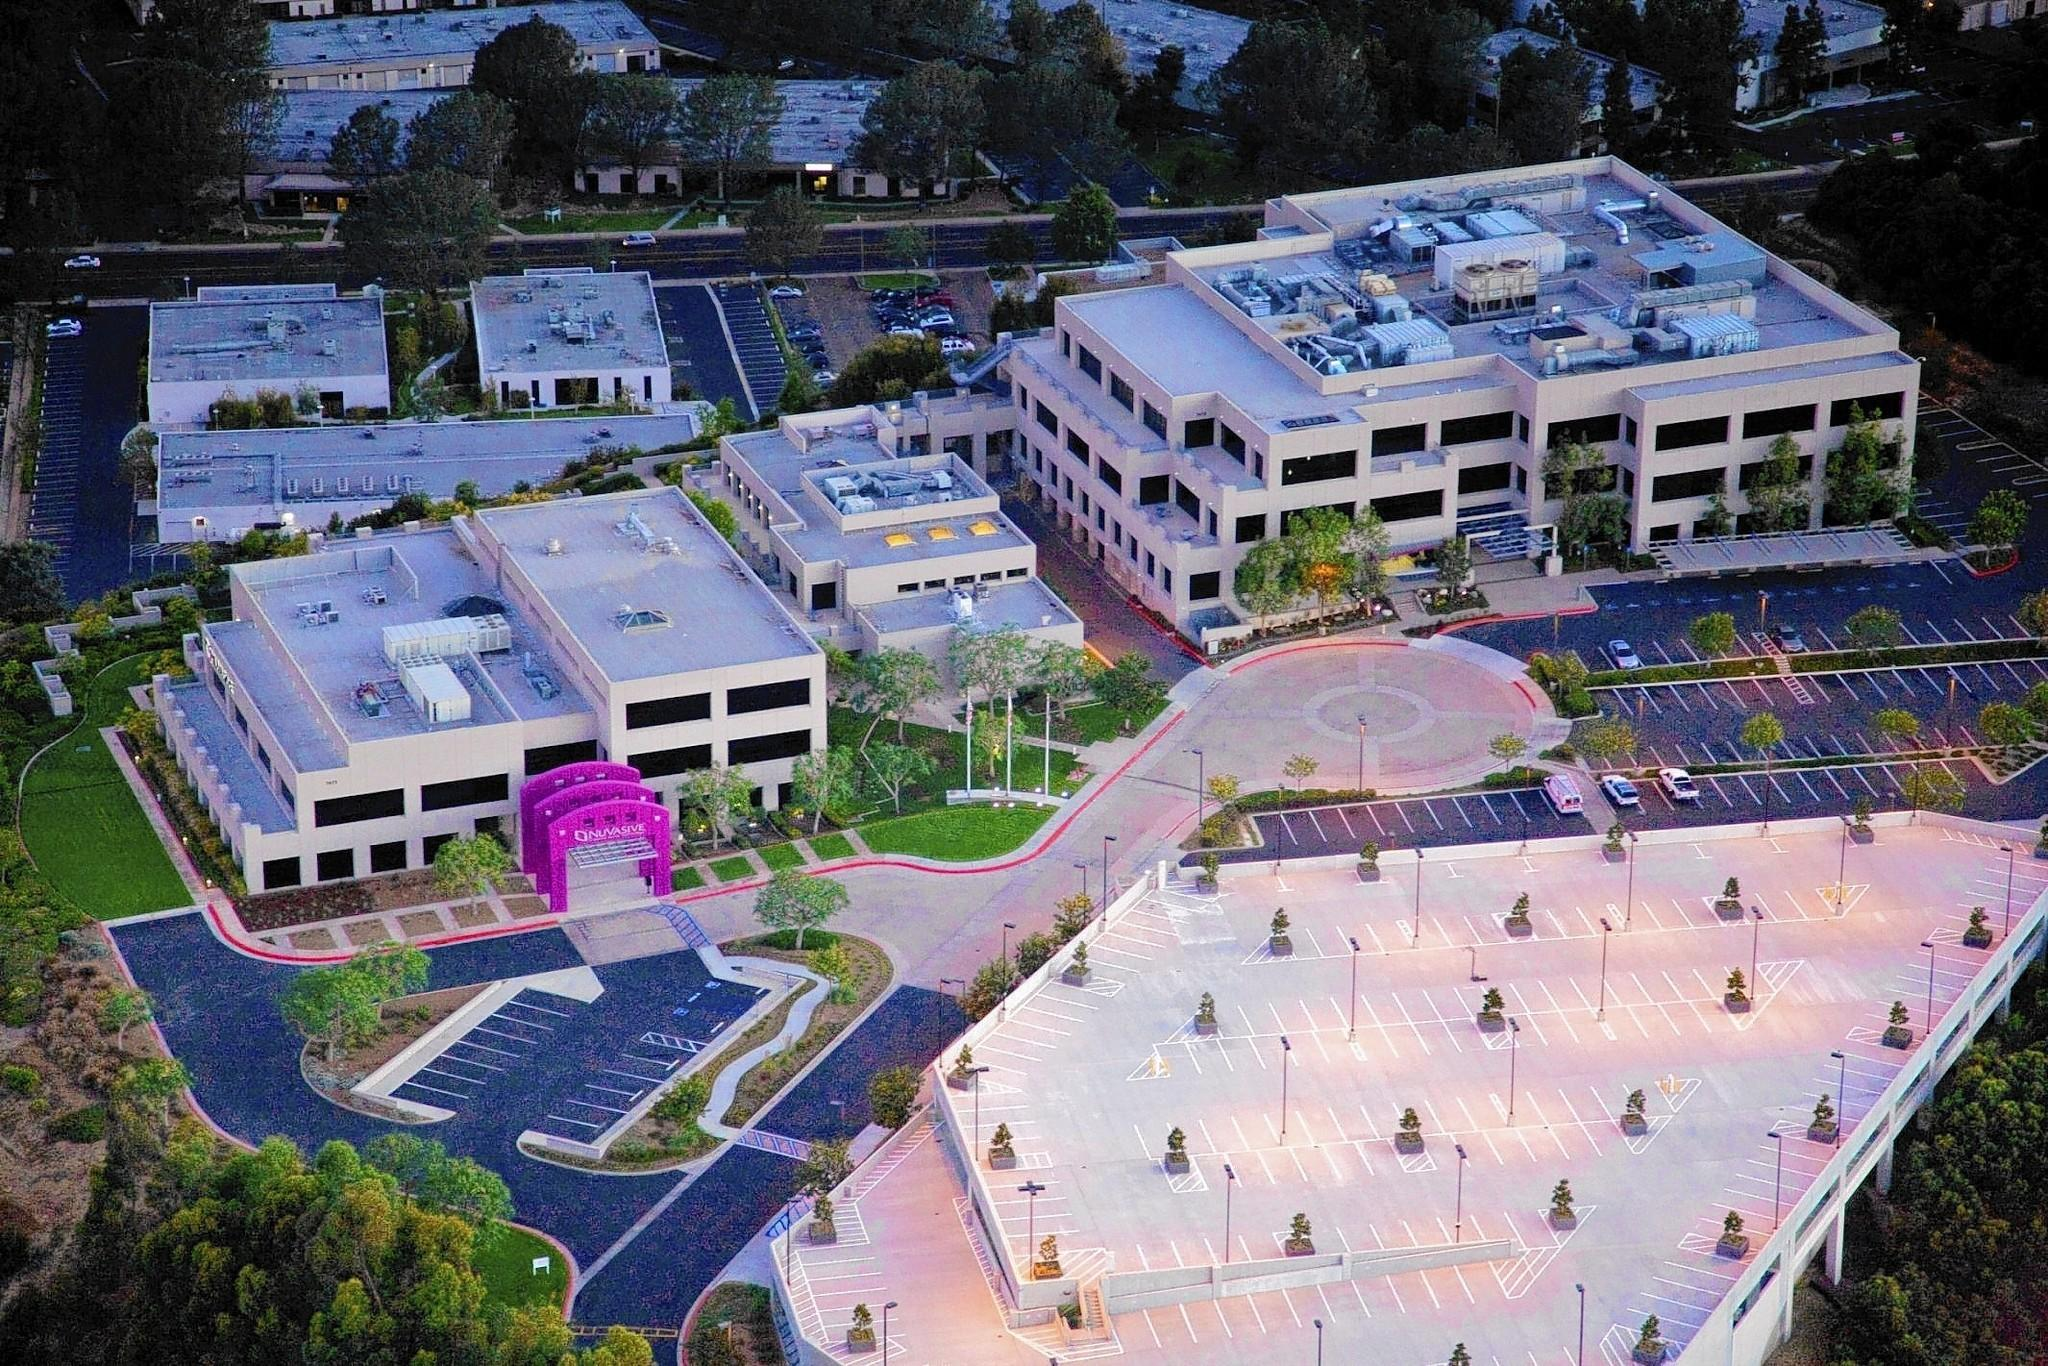 NuVasive offers a lineup of 90 products and surgical solutions for patients with cervical disc degeneration, degenerative scoliosis and general back pain. Above, the company's San Diego headquarters.